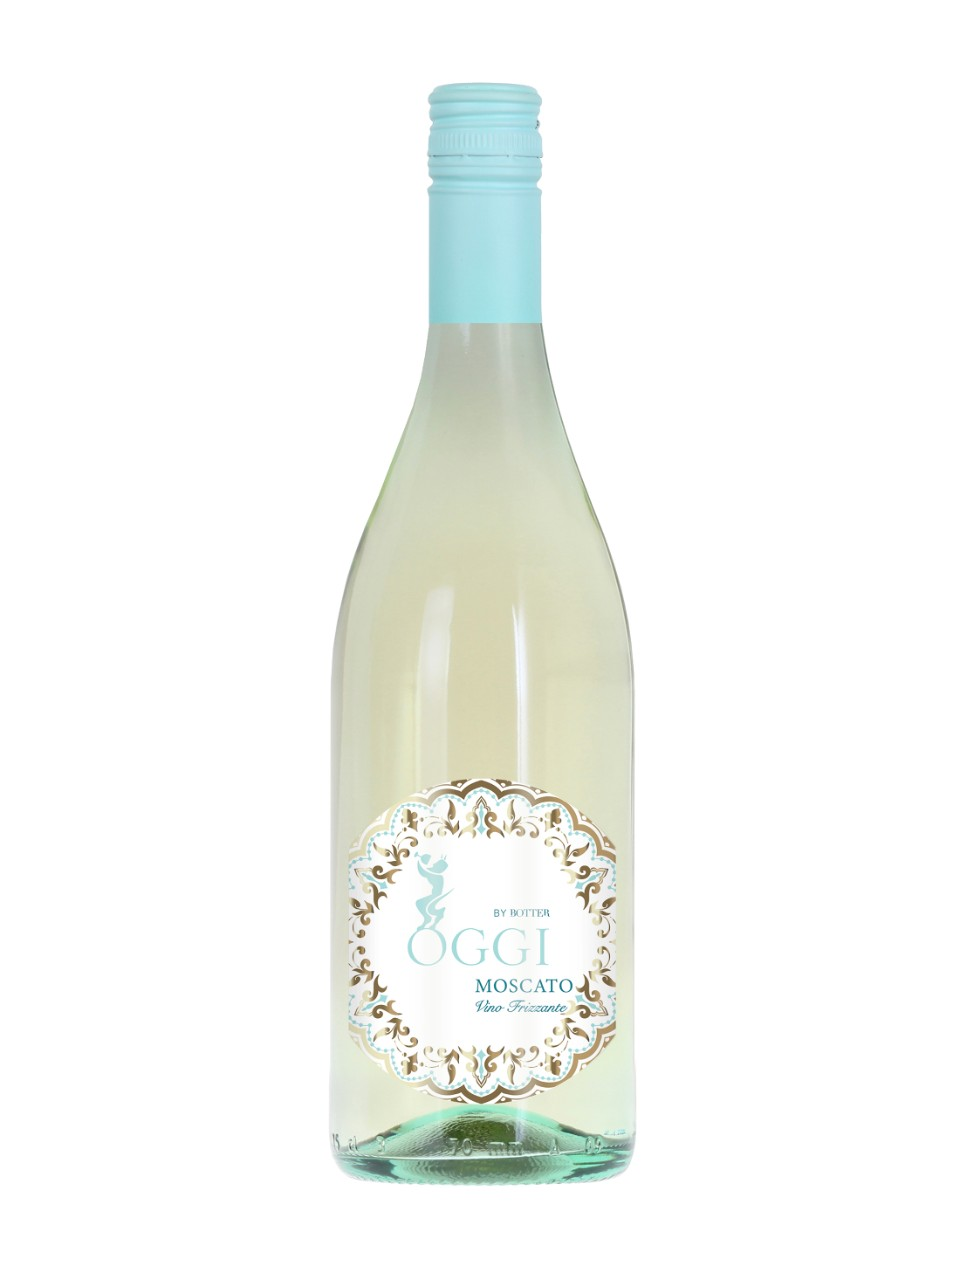 Image for Oggi Botter Moscato Frizzante IGT from LCBO